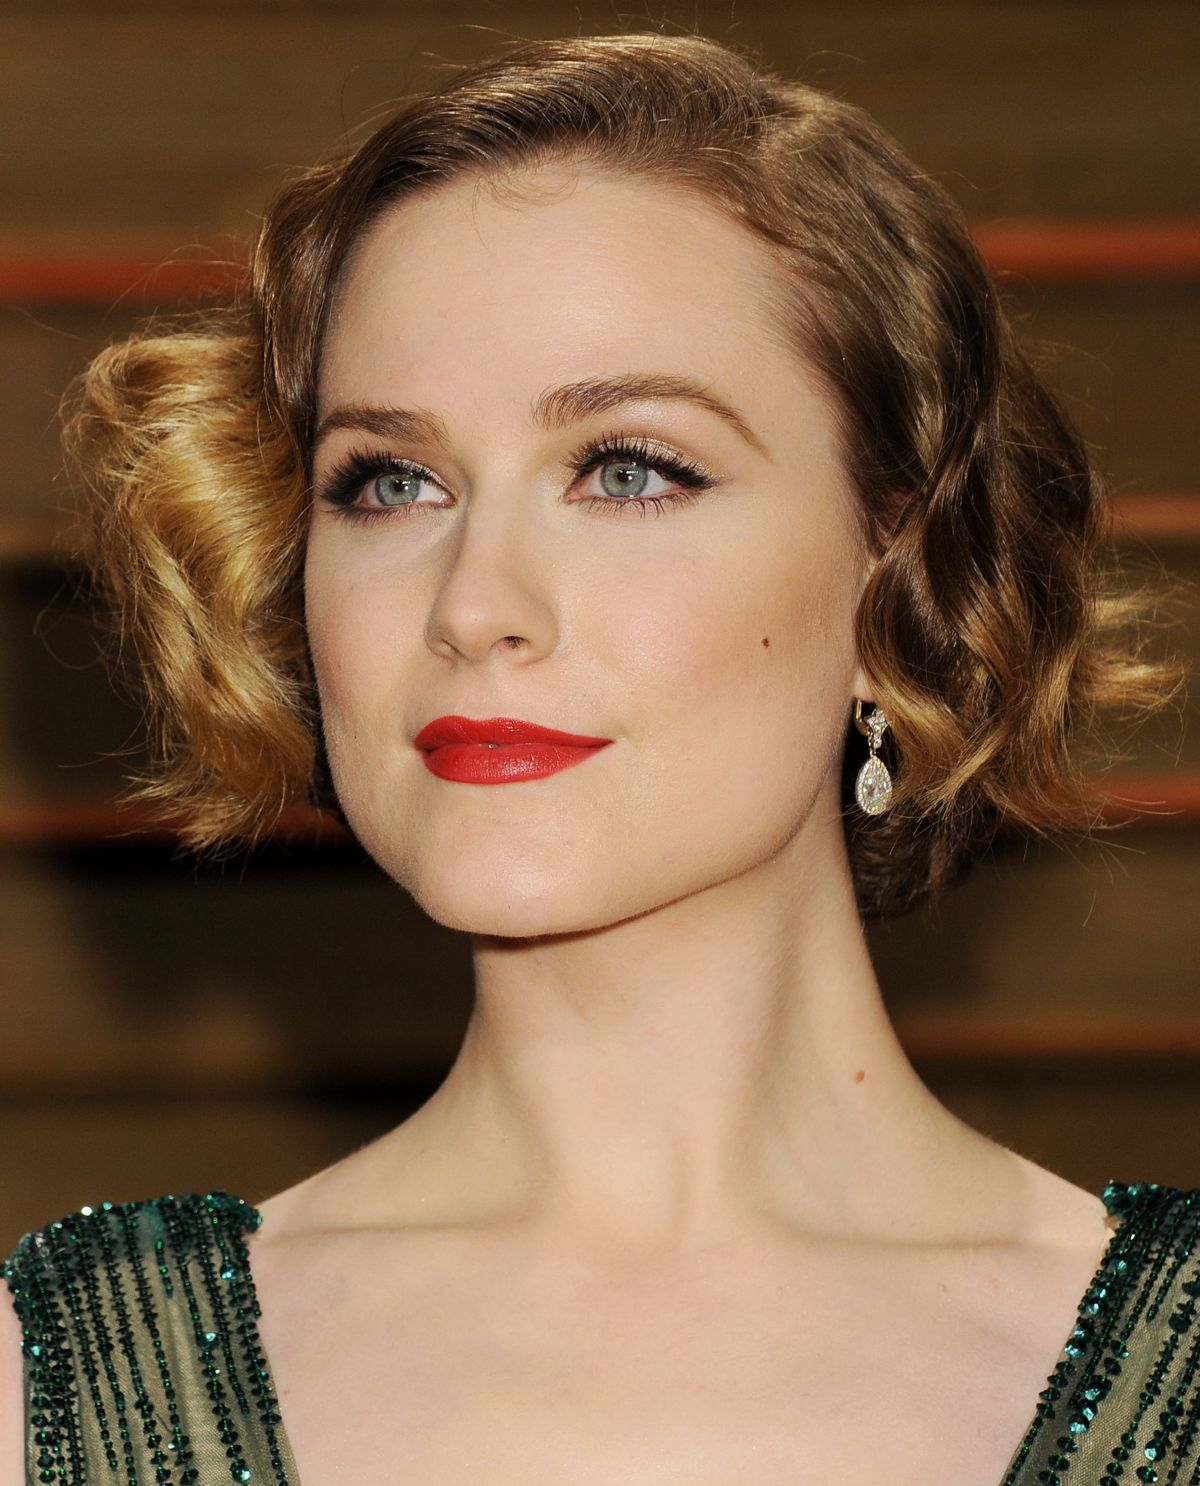 Evan Rachel Wood or Rachel Hurd-Wood? Who is more beautiful? Evan Rachel Wood